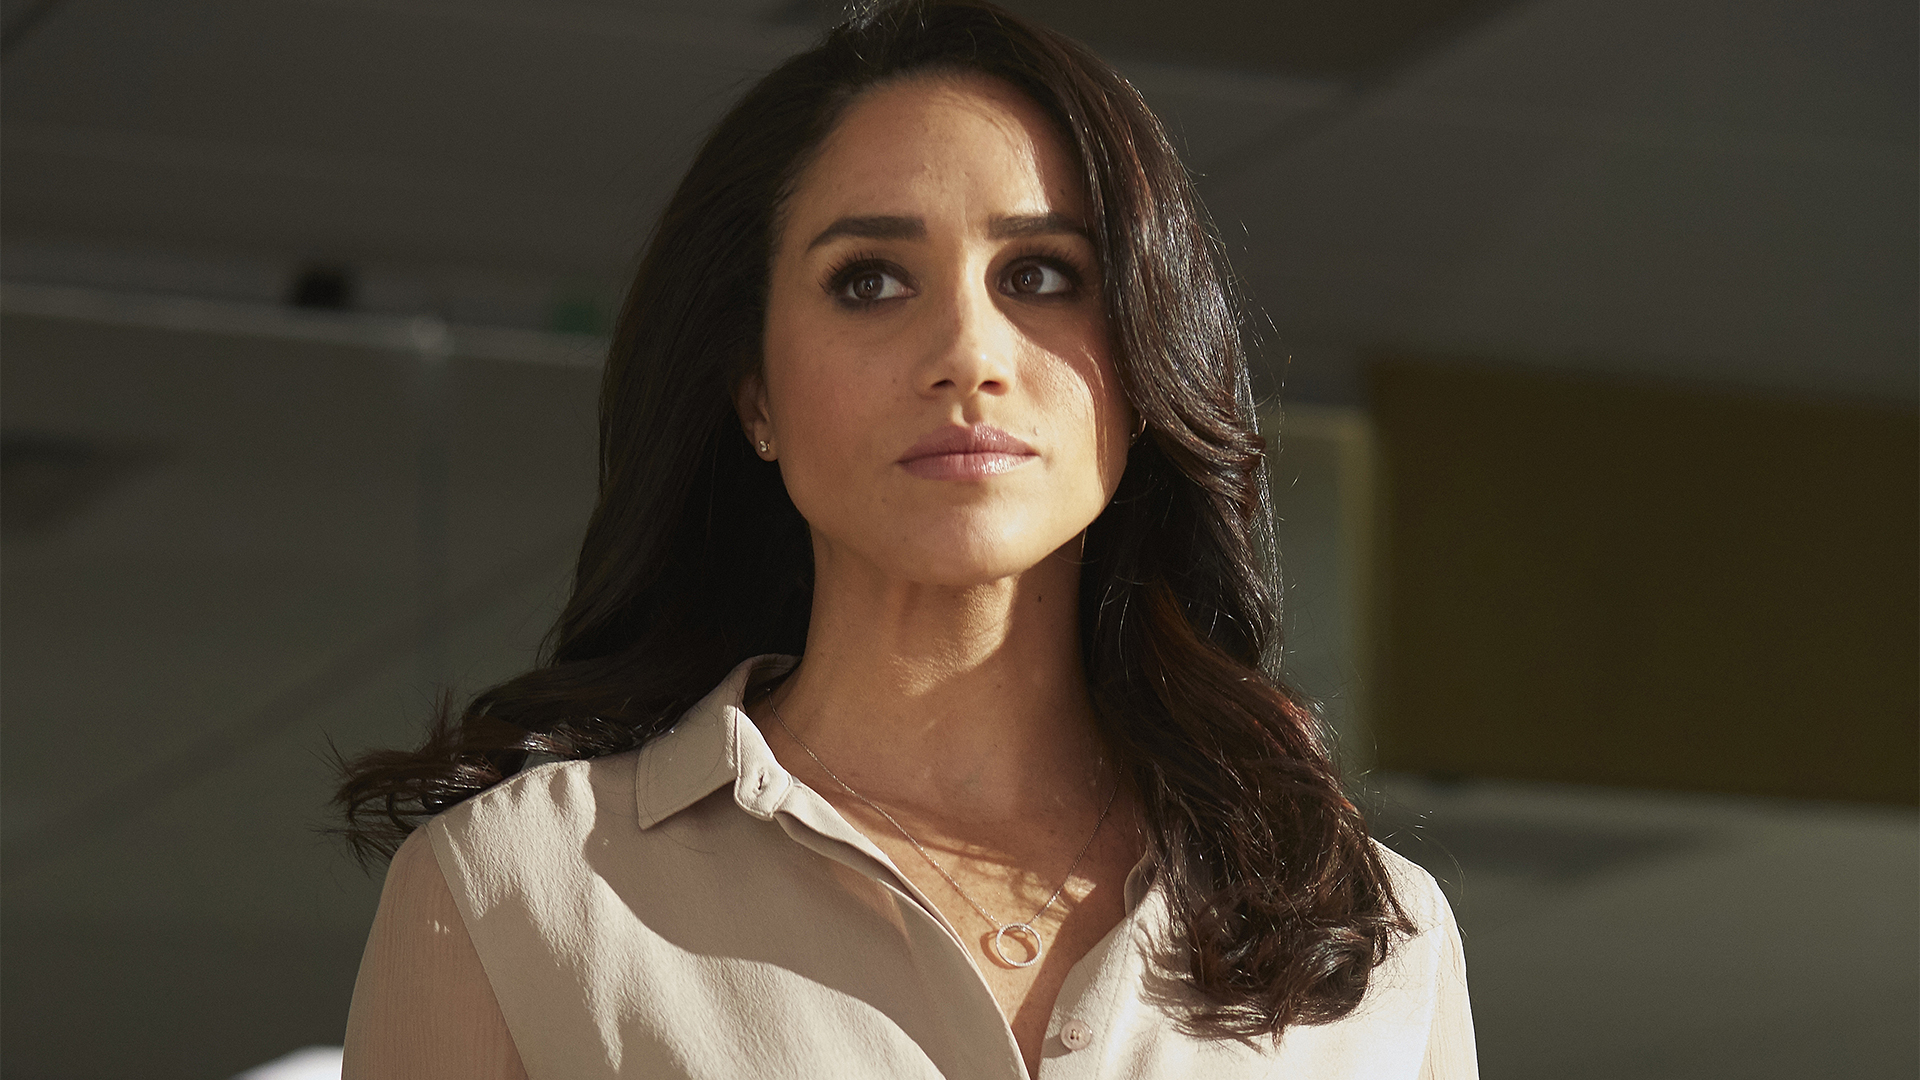 Suits Rachel Zane Wallpaper